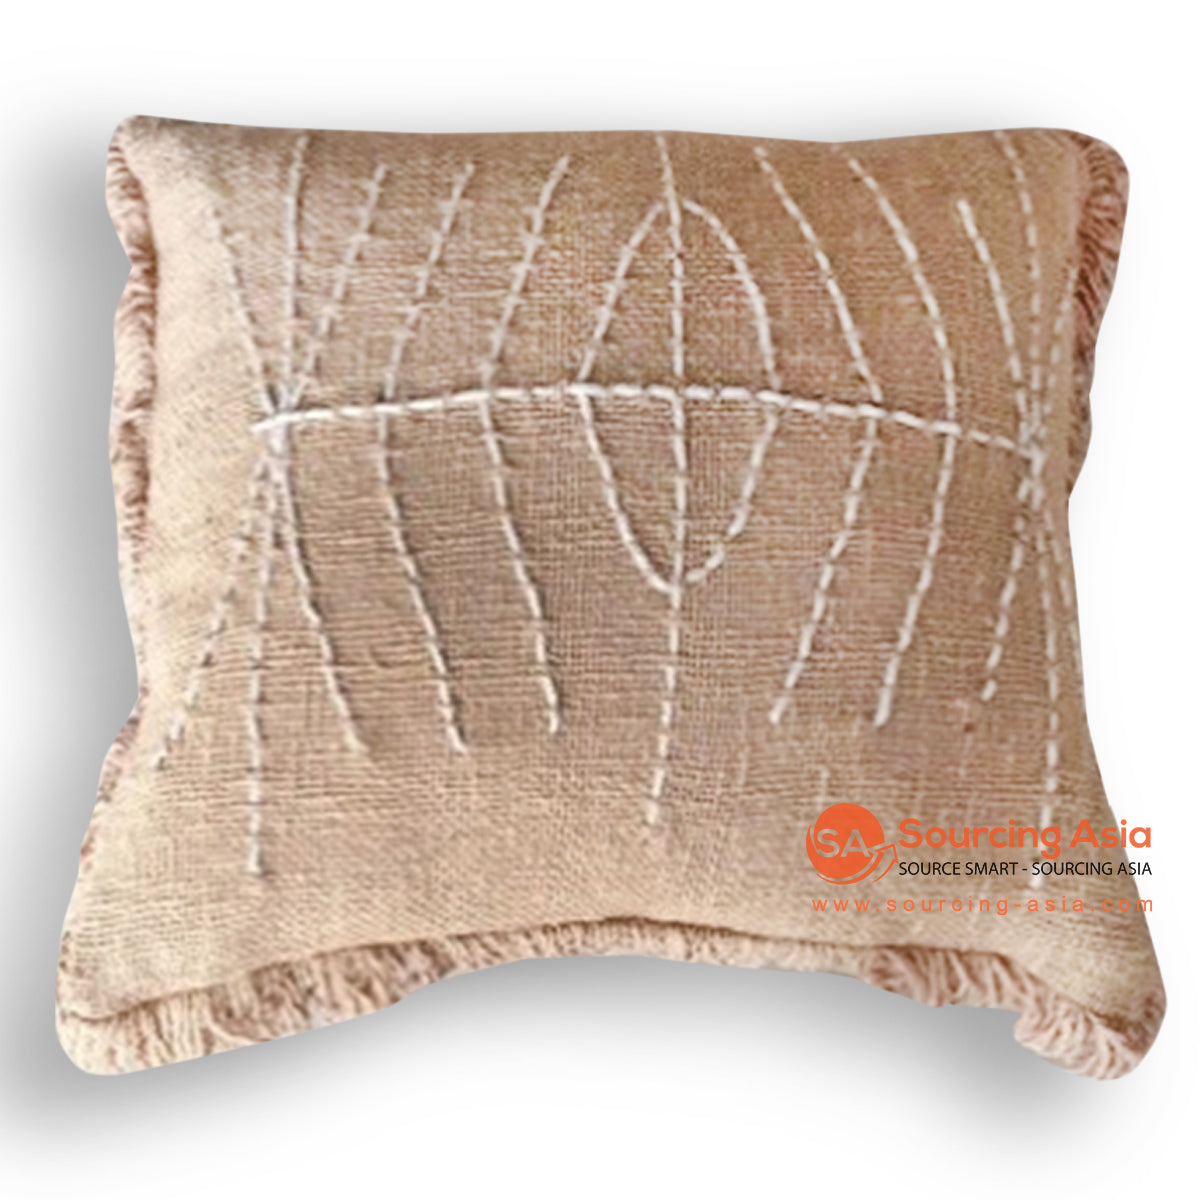 HIP029 HAND STITCHED COVER PILLOW WITH FRINGE 50 X 50 CM